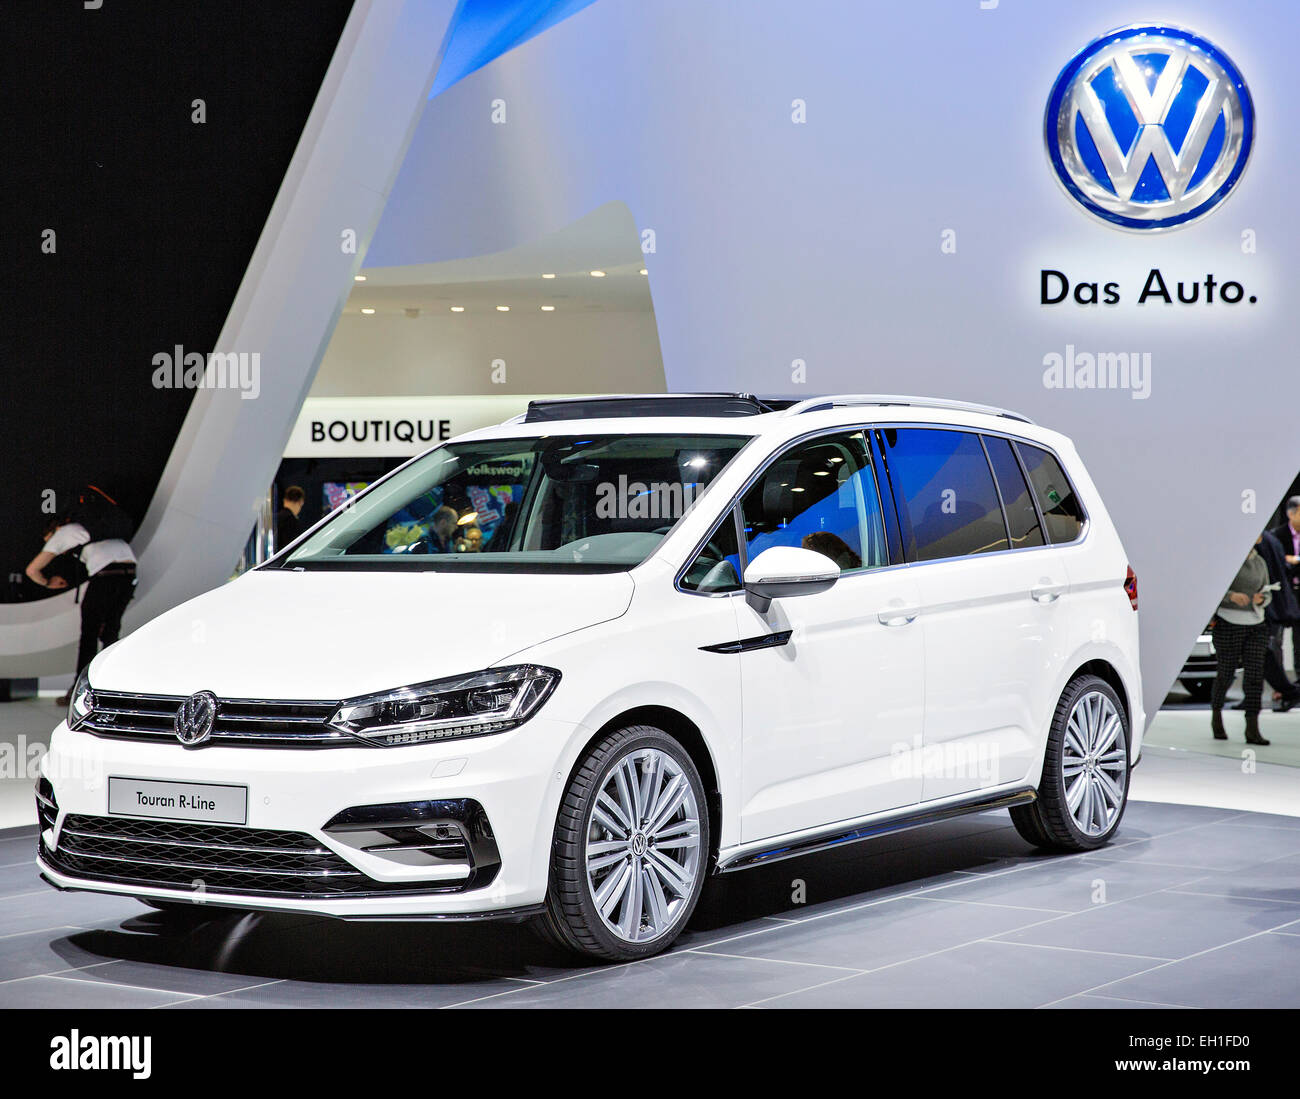 volkswagen touran r line stock photo royalty free image. Black Bedroom Furniture Sets. Home Design Ideas